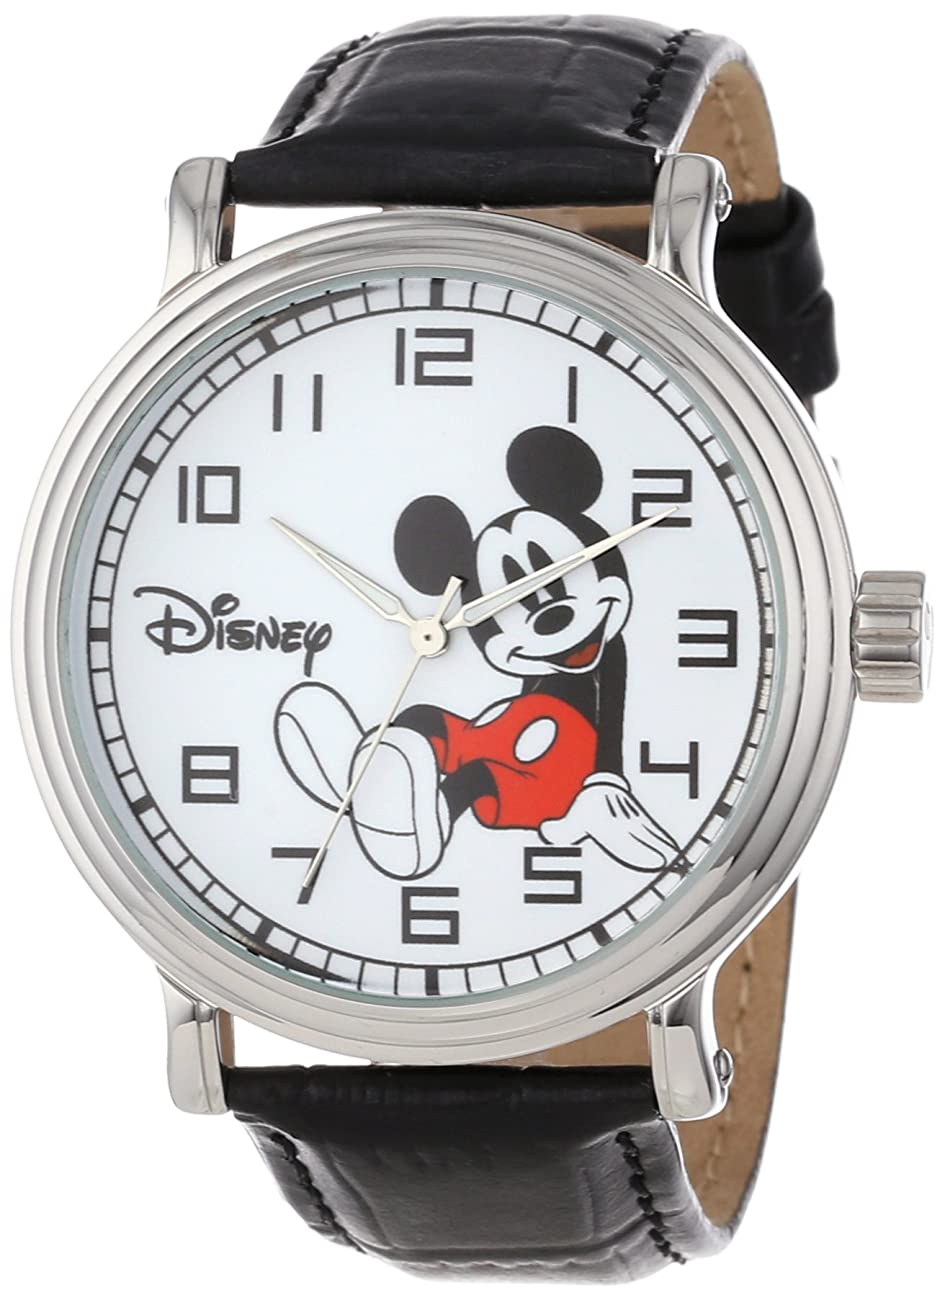 Disney Men's W000531 Mickey Mouse Vintage Watch 0